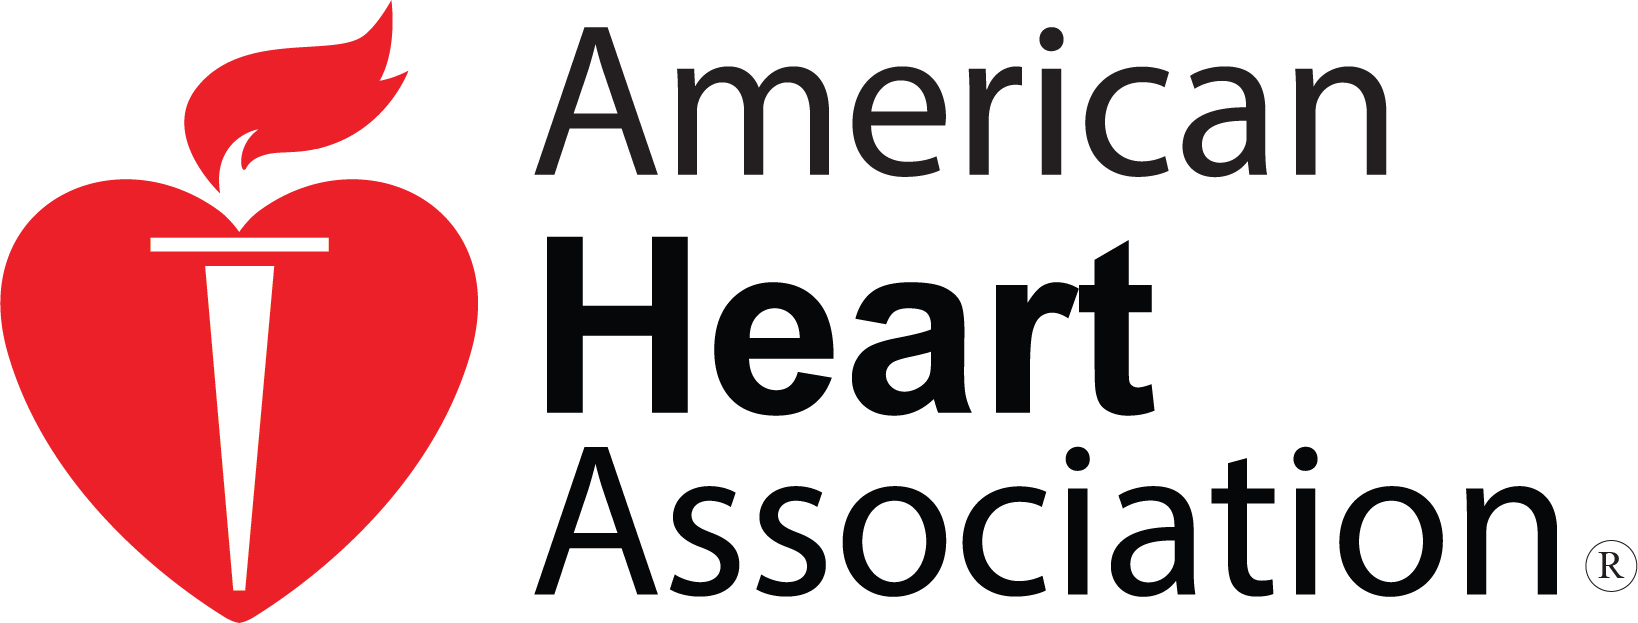 American heart association bls for healthcare providers class on american heart association bls for healthcare providers class on target training courses llc xflitez Image collections